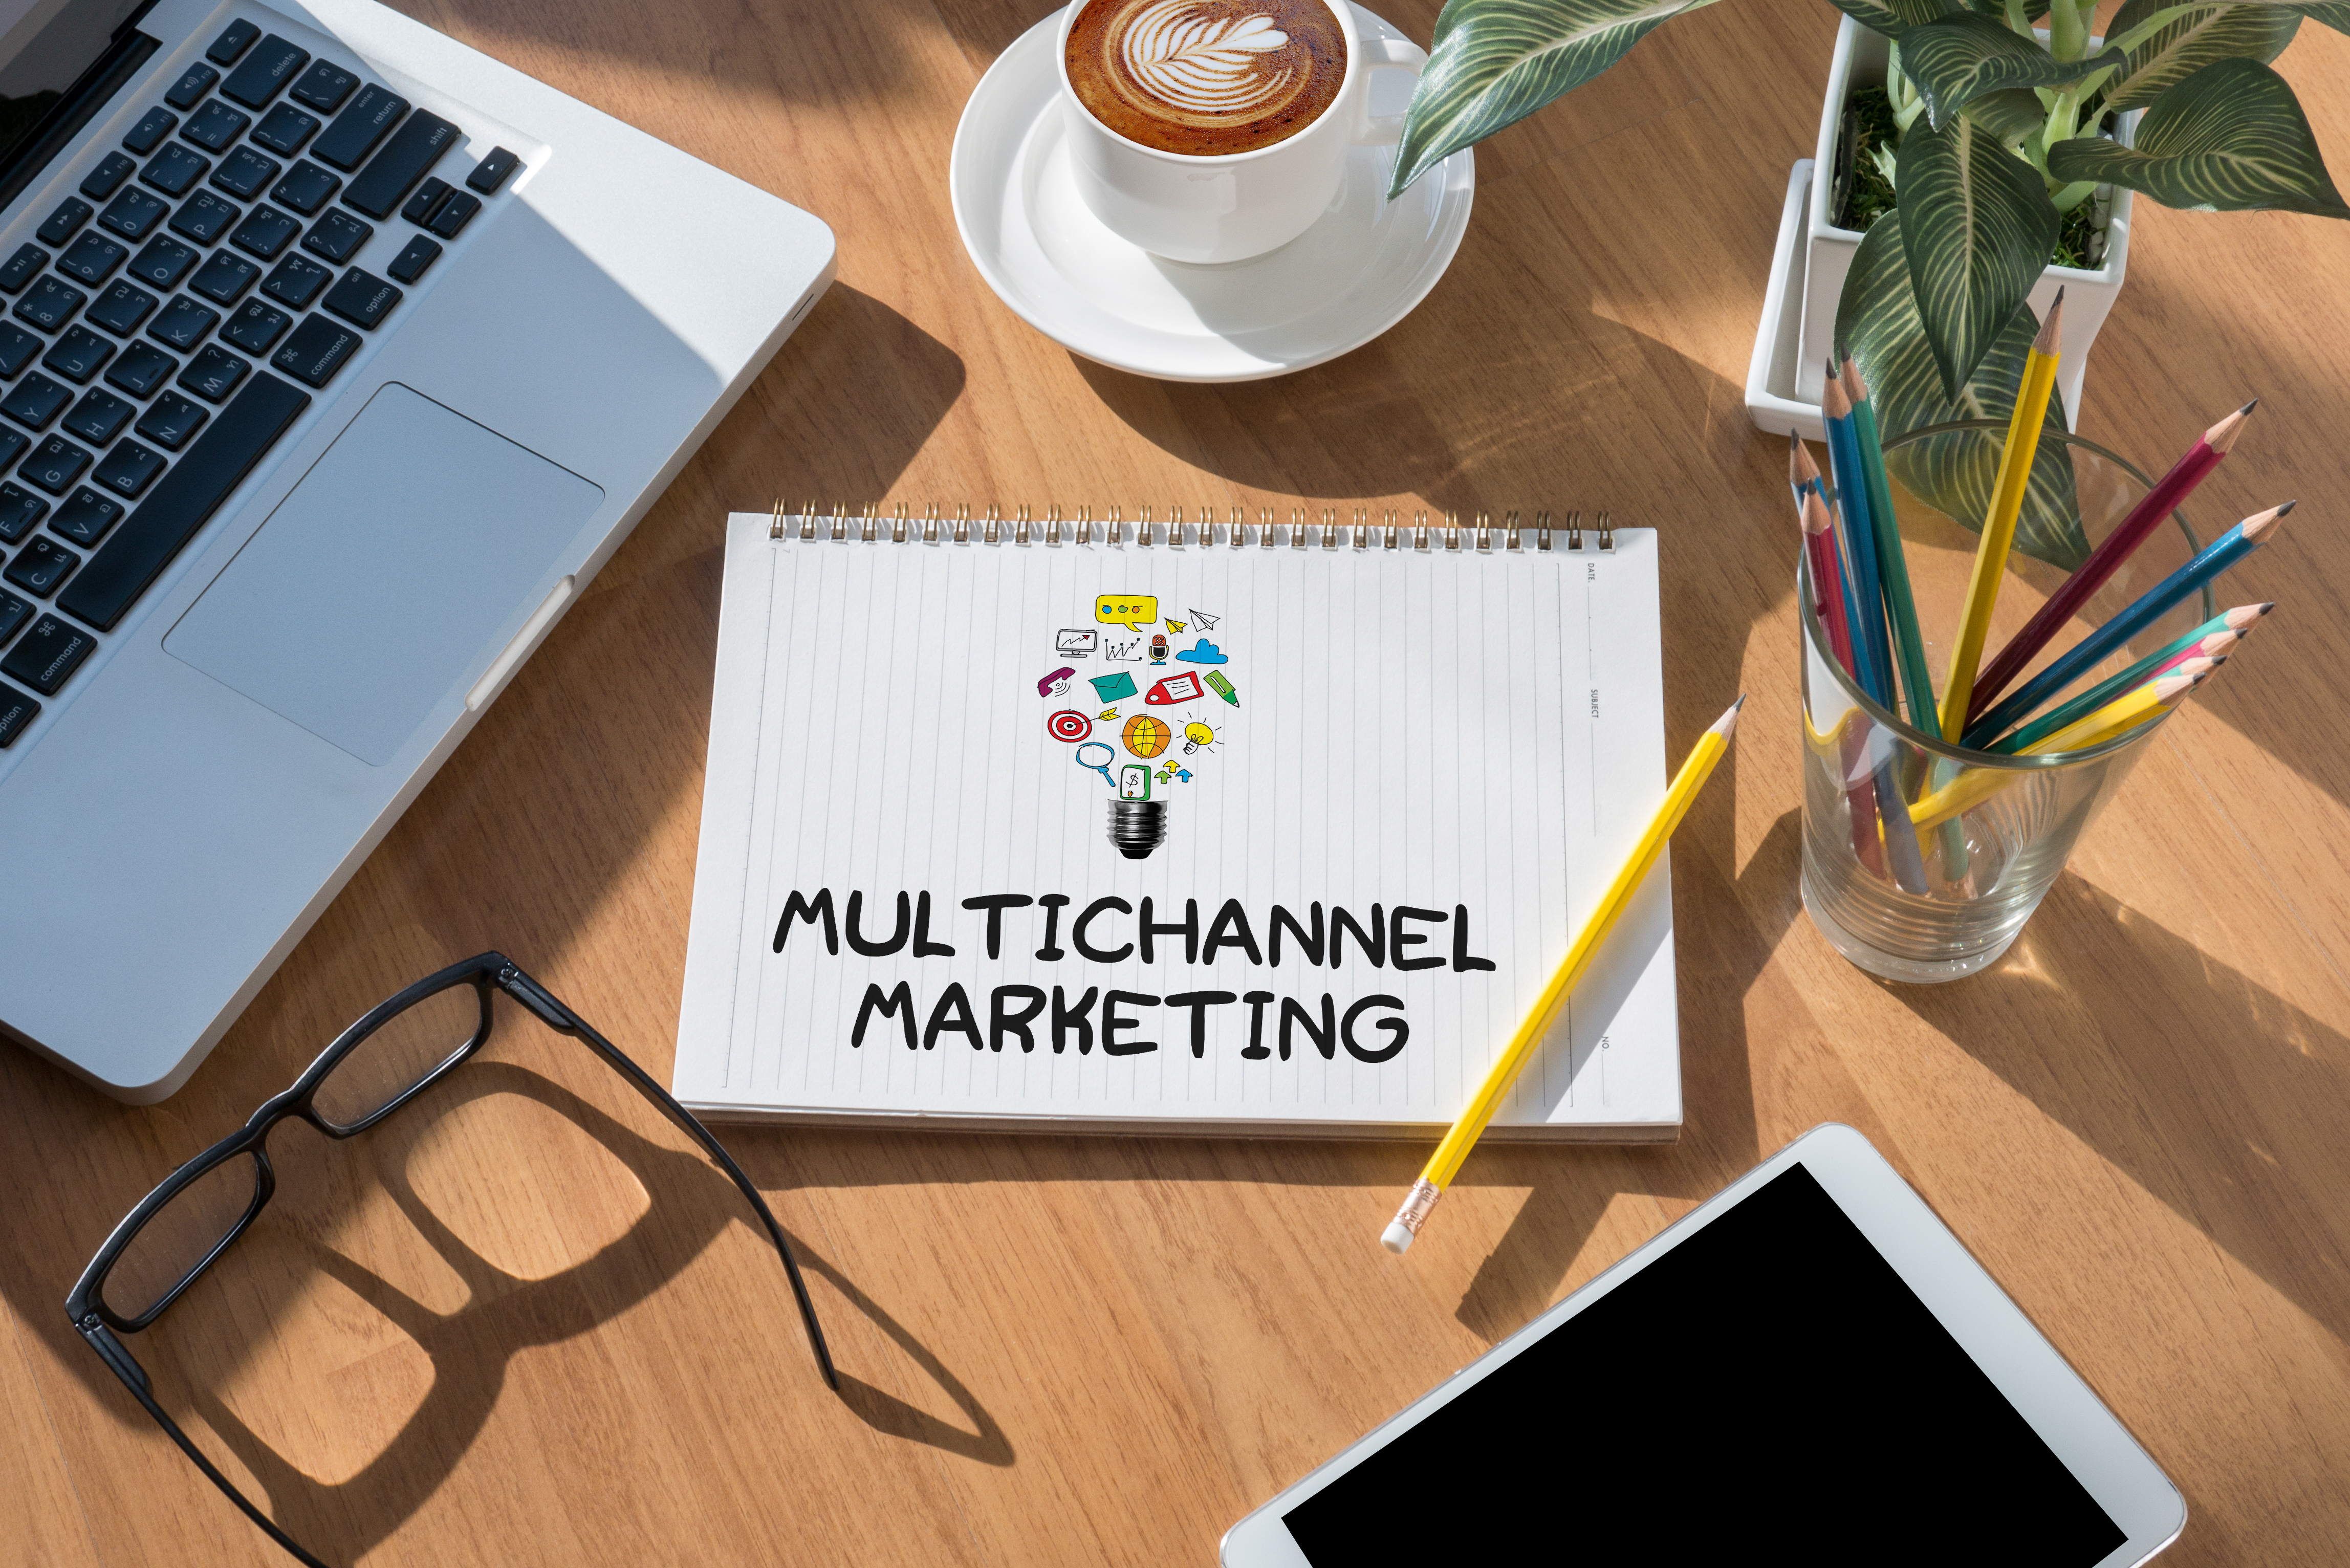 Multichannel-Marketingstrategie